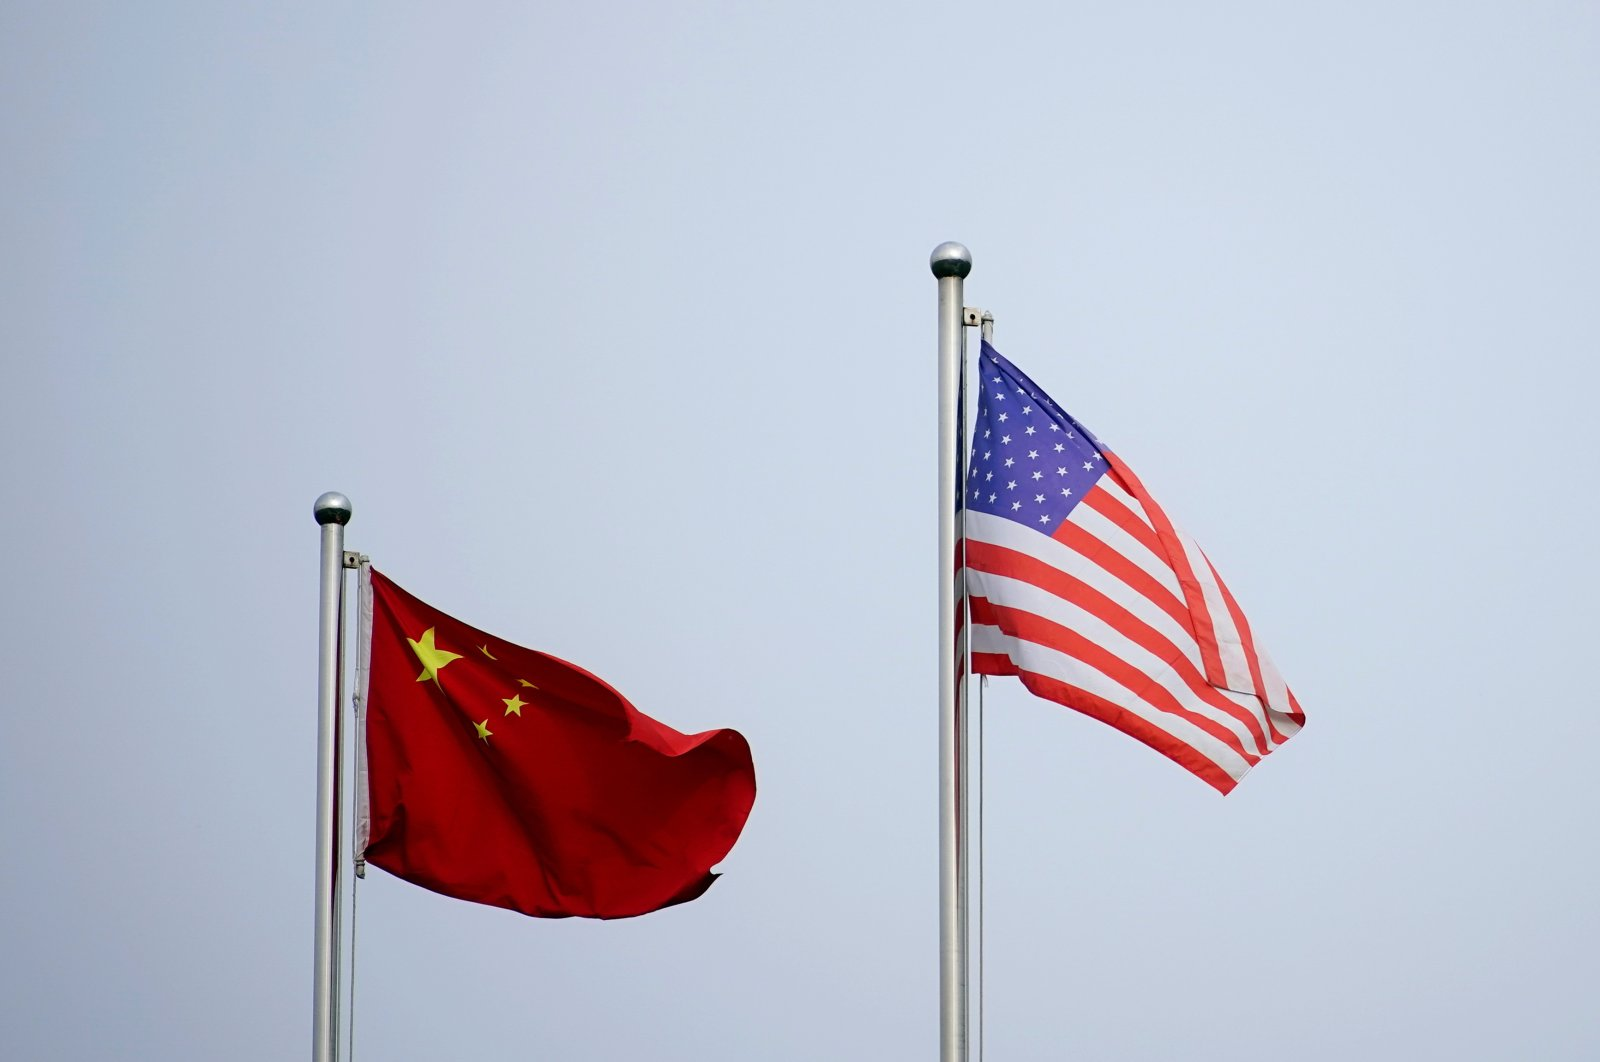 Chinese and U.S. flags flutter outside a company building in Shanghai, China, April 14, 2021. (Reuters Photo)